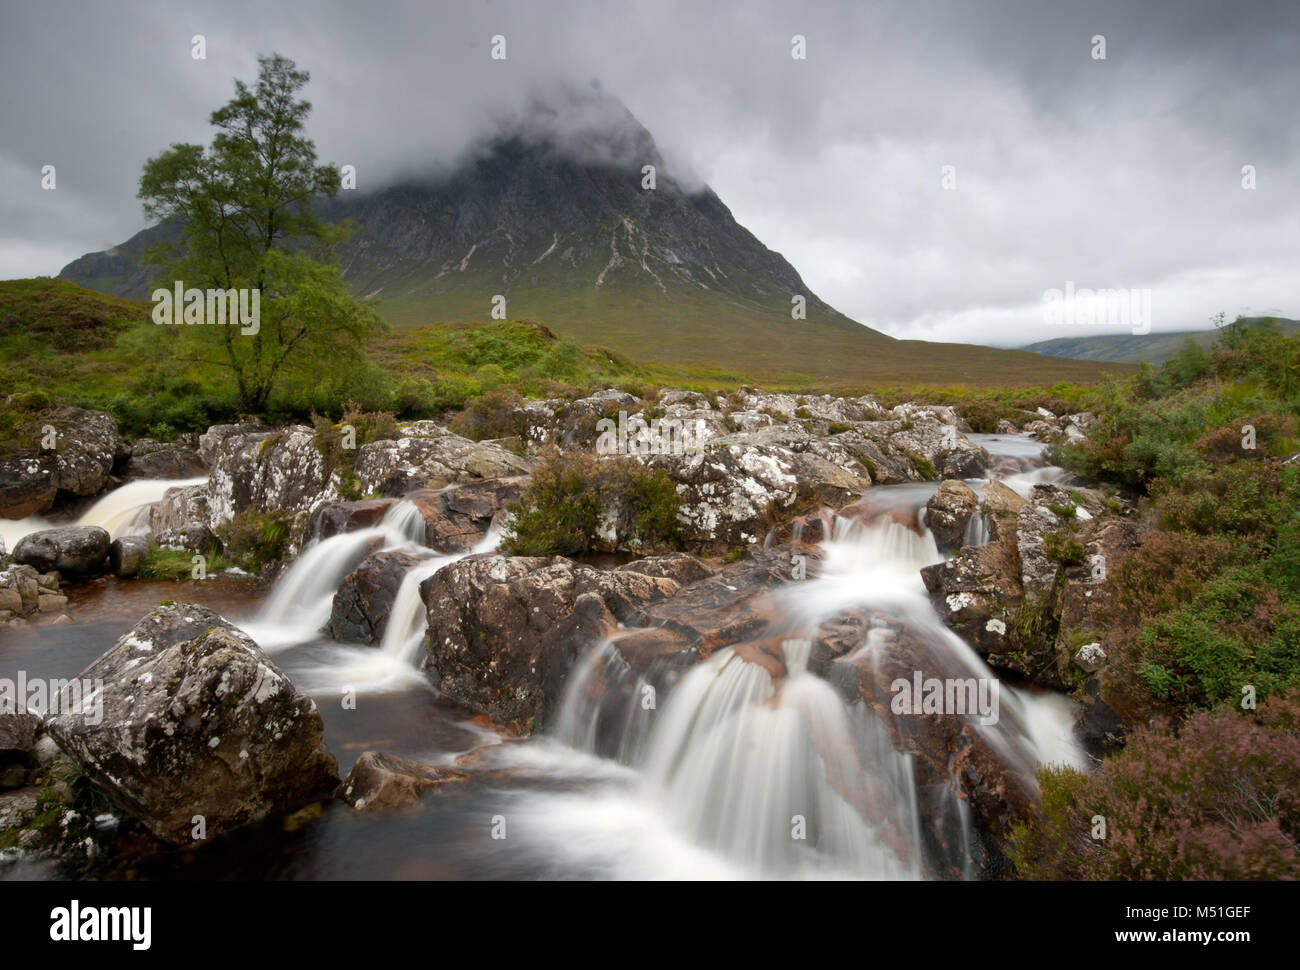 Landscape from Glencoe area in Scotland, Scottish highlands. The mountain is the famous Buachaille Etive Mor - Stock Image